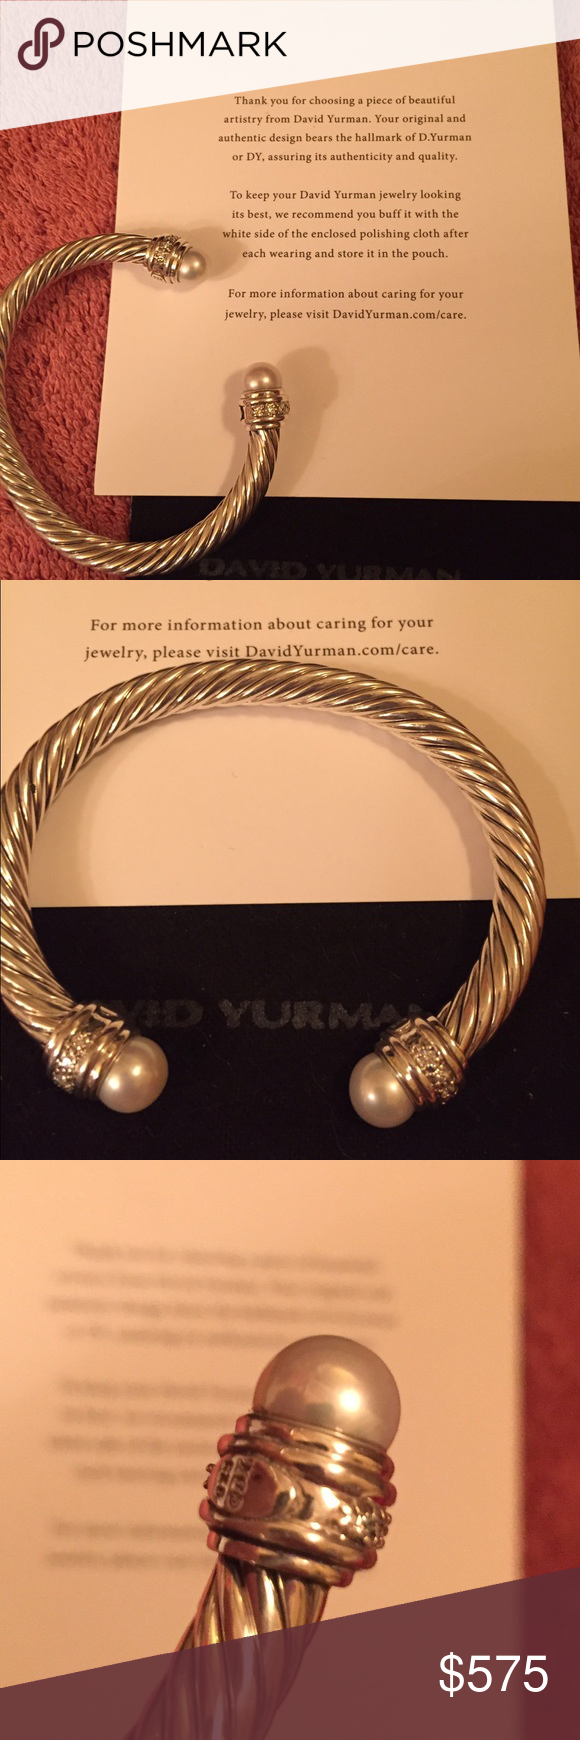 David Yurman Pearl Bangle Size Small Will Fit A Wrist Of 4 5 To